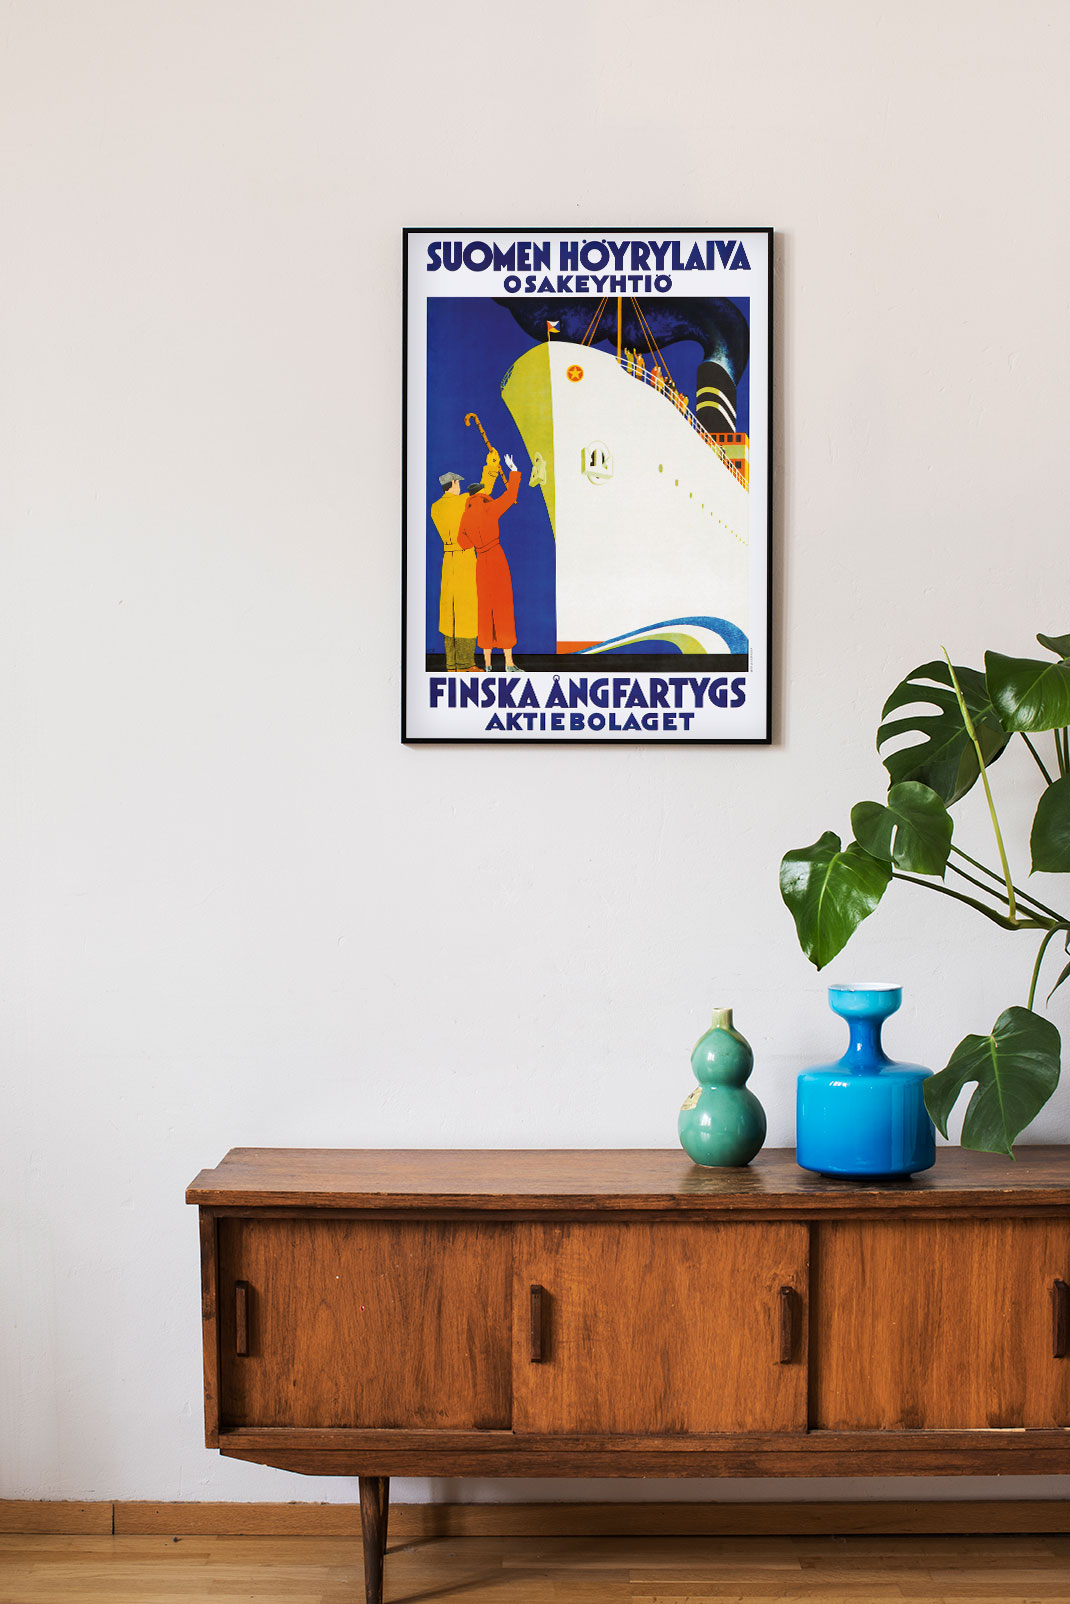 Poster of a Finnish steamship